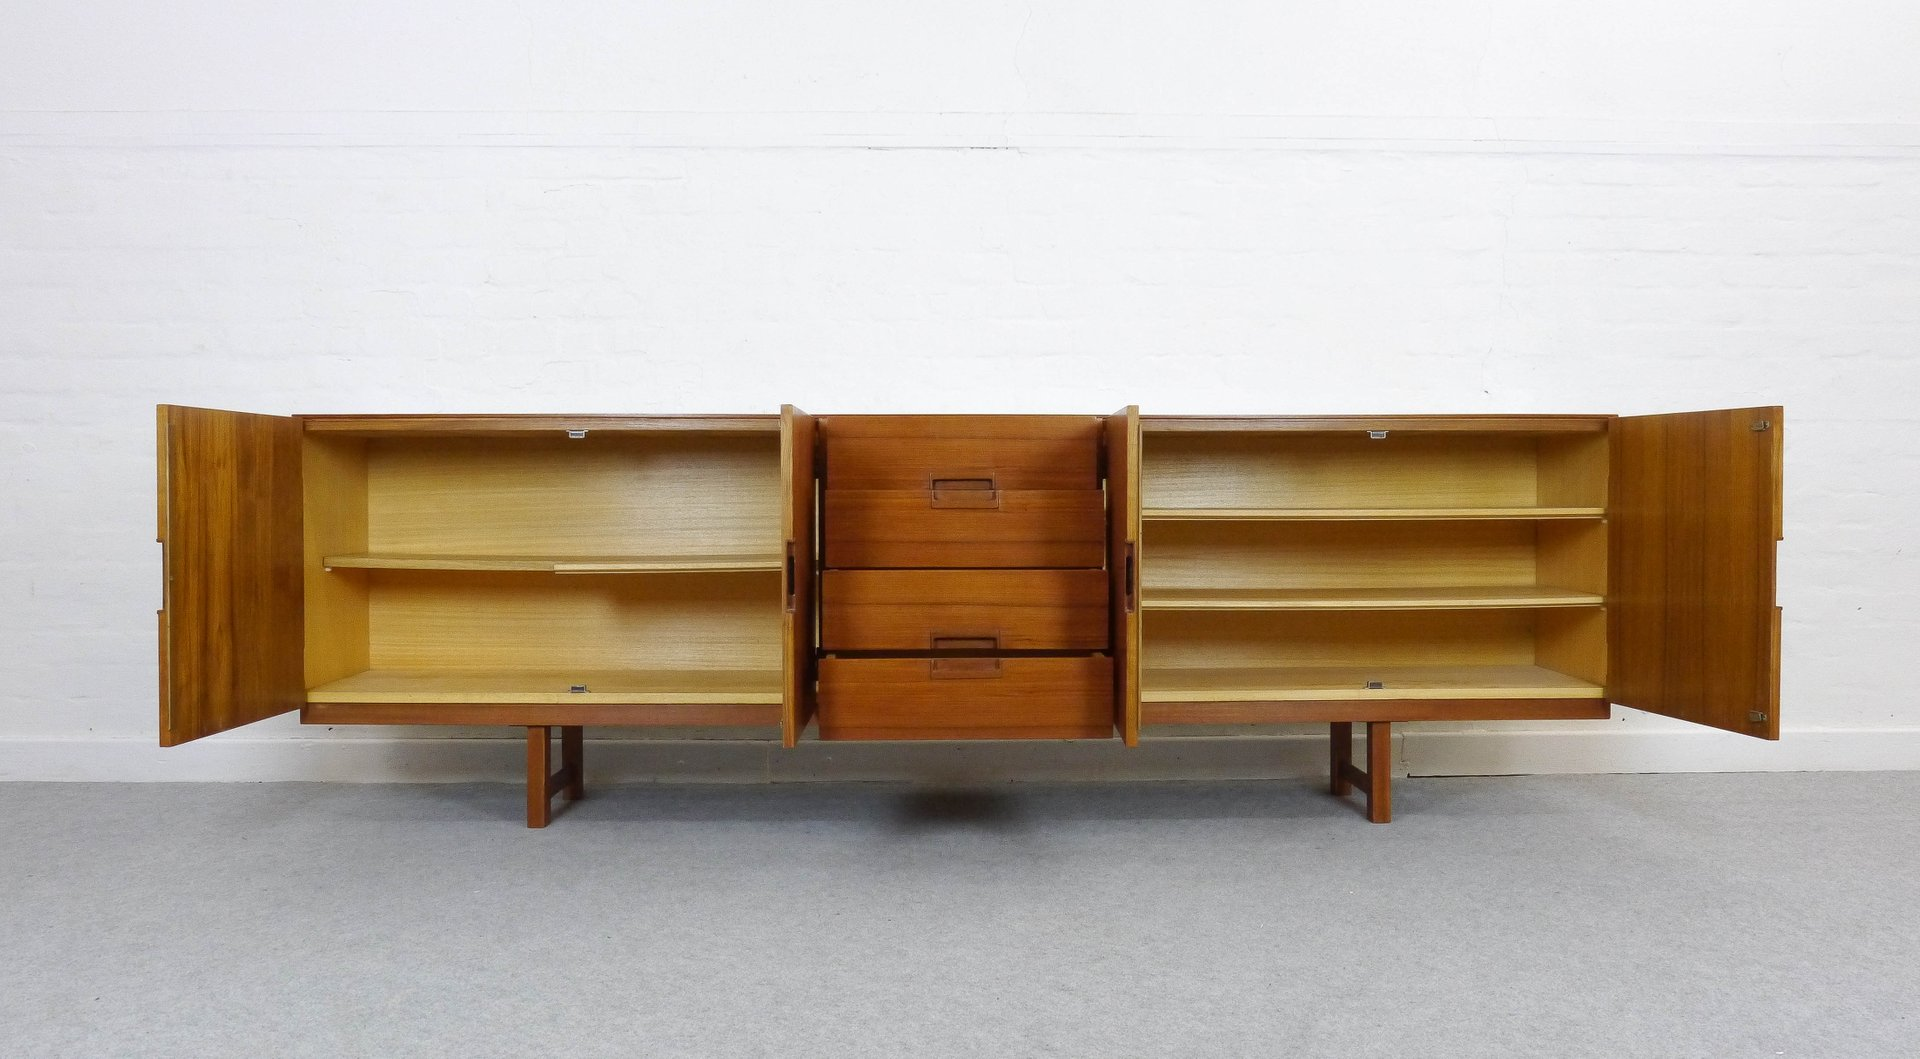 gro es teak sideboard mit vier schubladen 1960er bei pamono kaufen. Black Bedroom Furniture Sets. Home Design Ideas